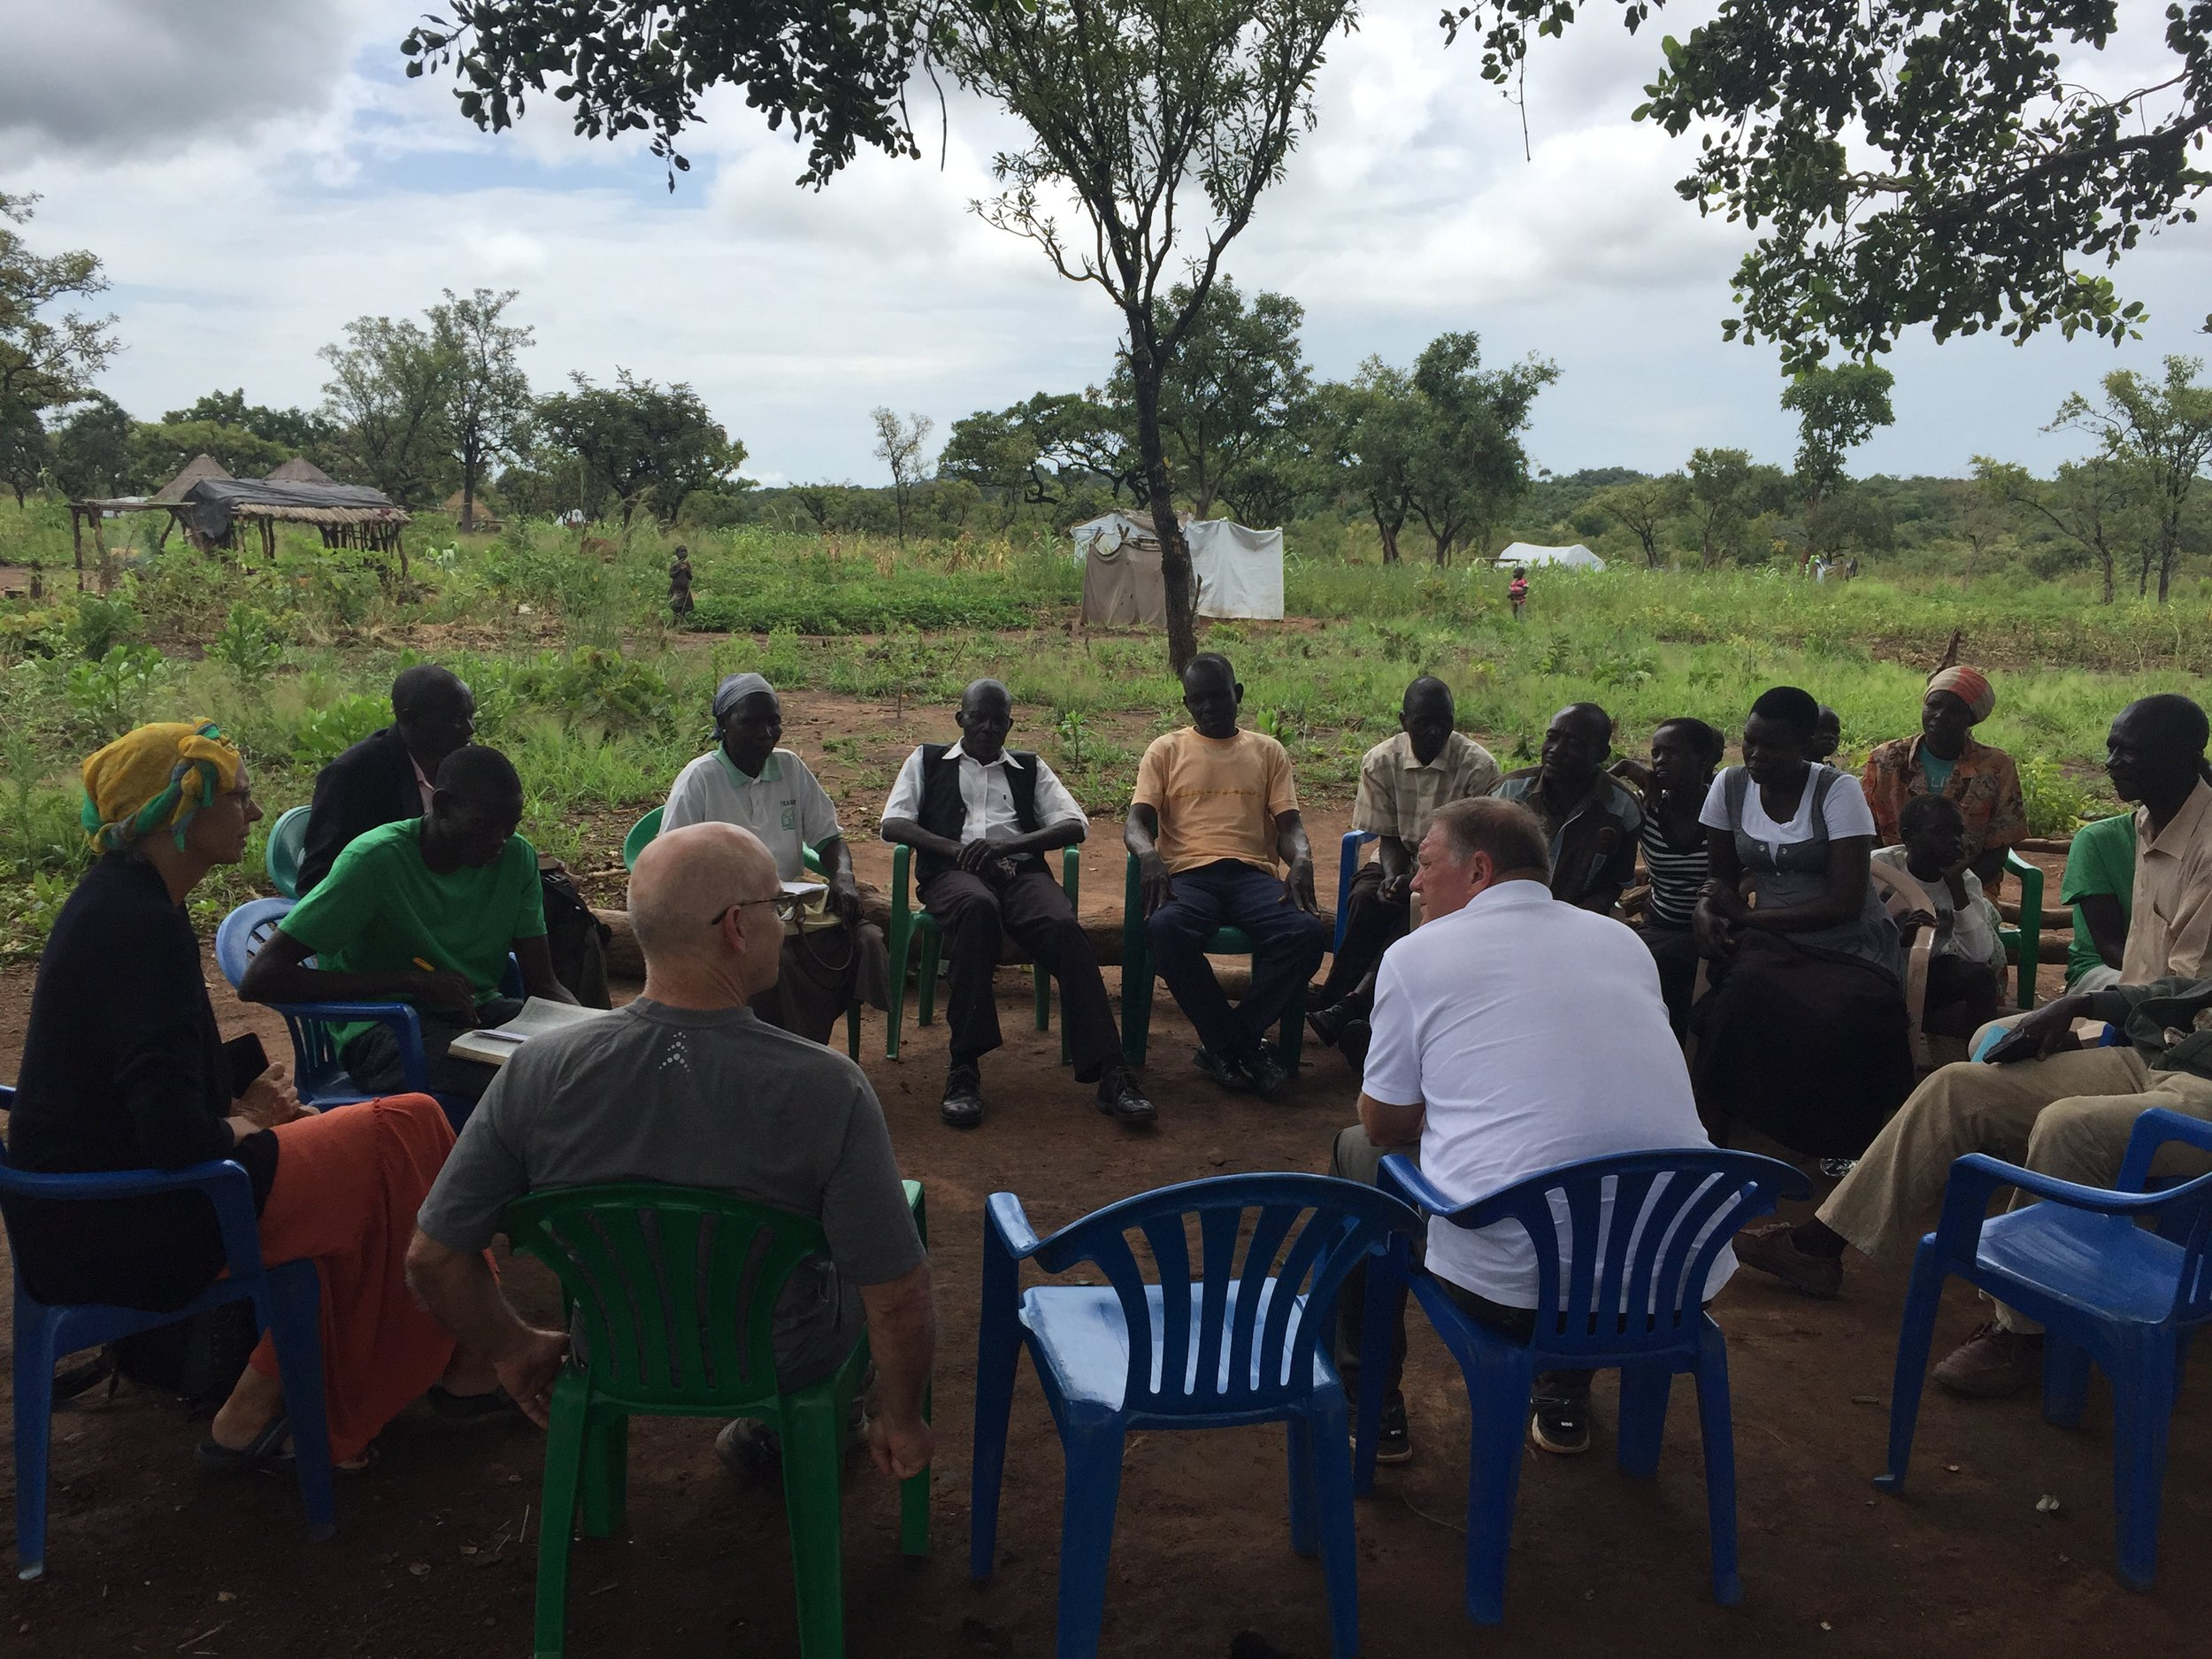 Exhorting & listening to the needs of South Sudanese pastors